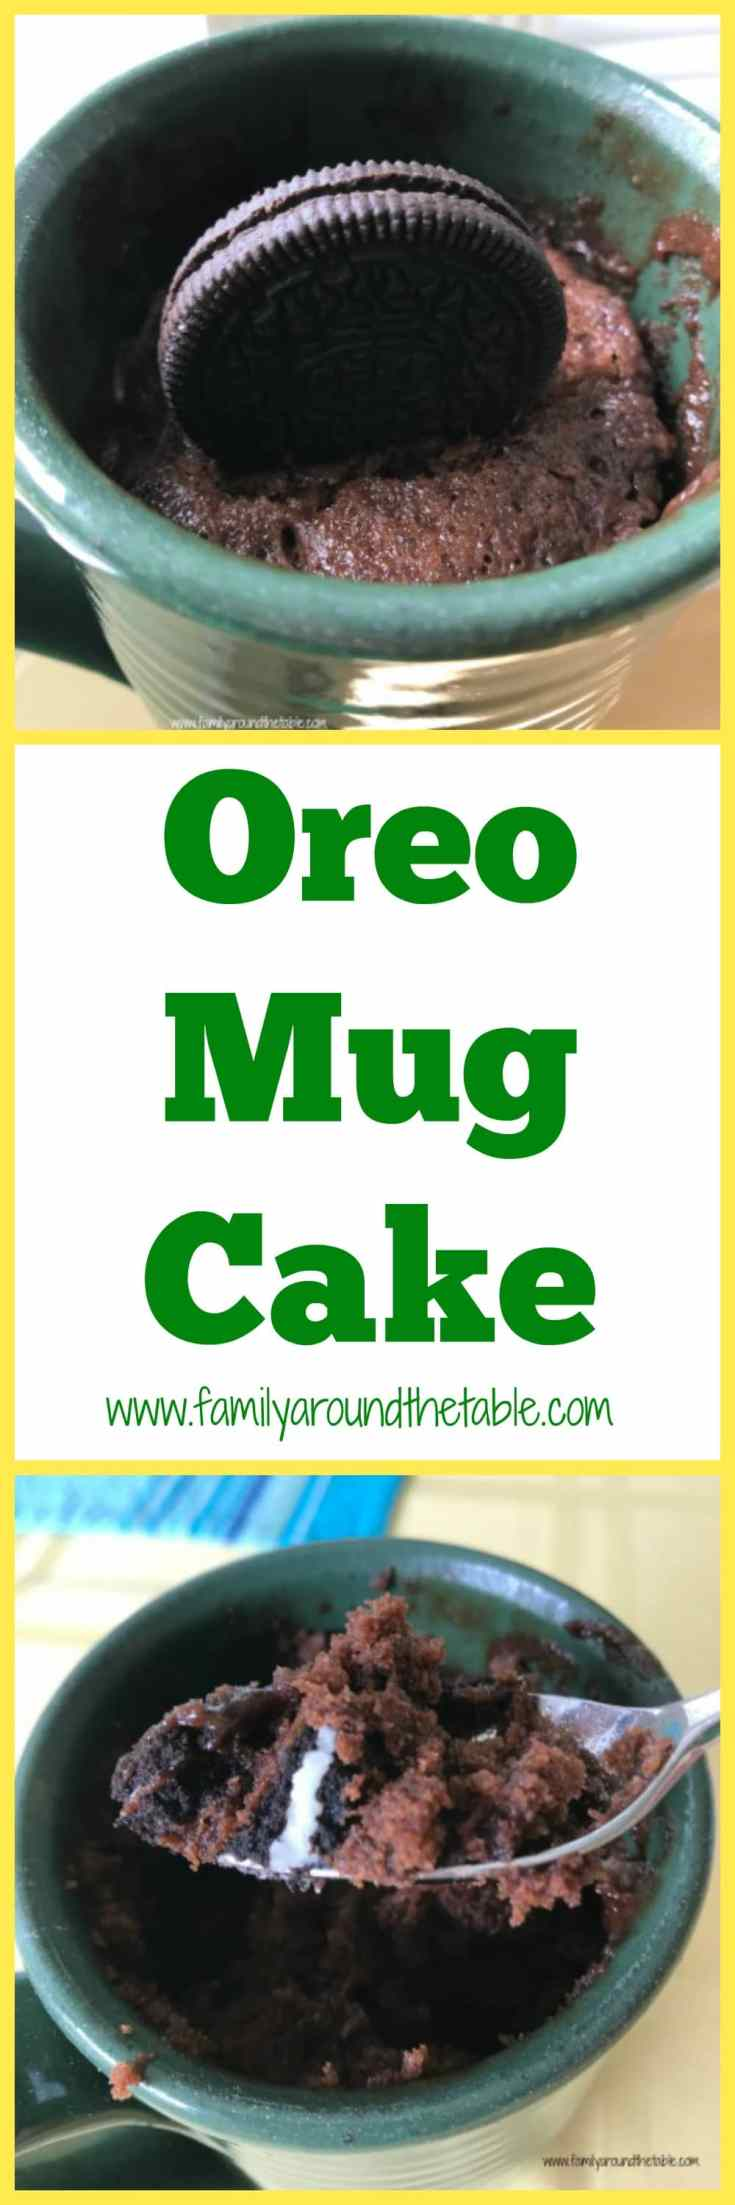 Oreo mug cake when you need a little something sweet. Perfect for after school or after dinner.